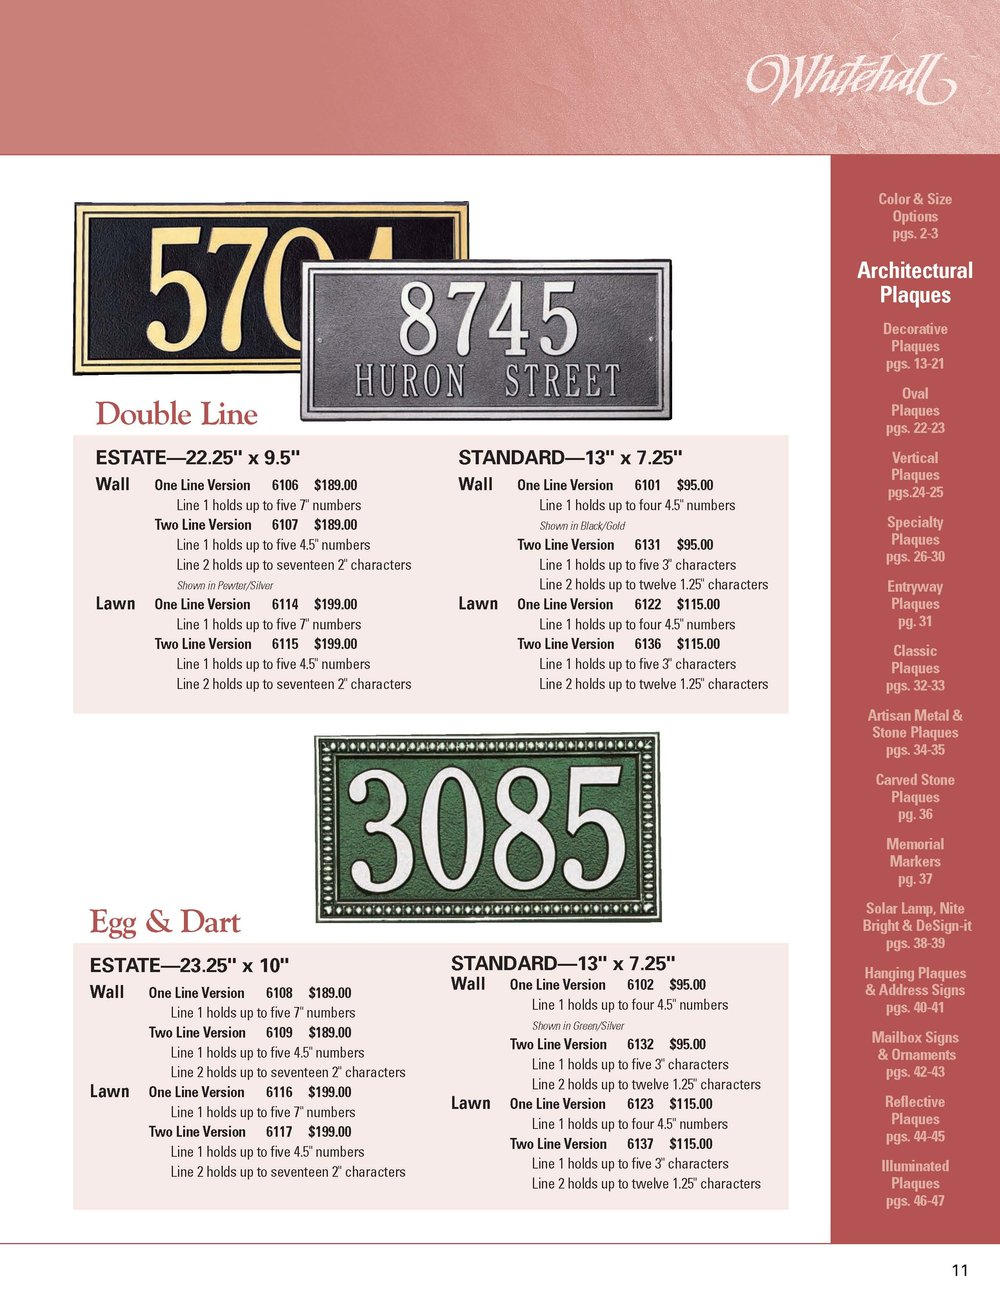 whitehall_catalog_pers_Page_11.jpg